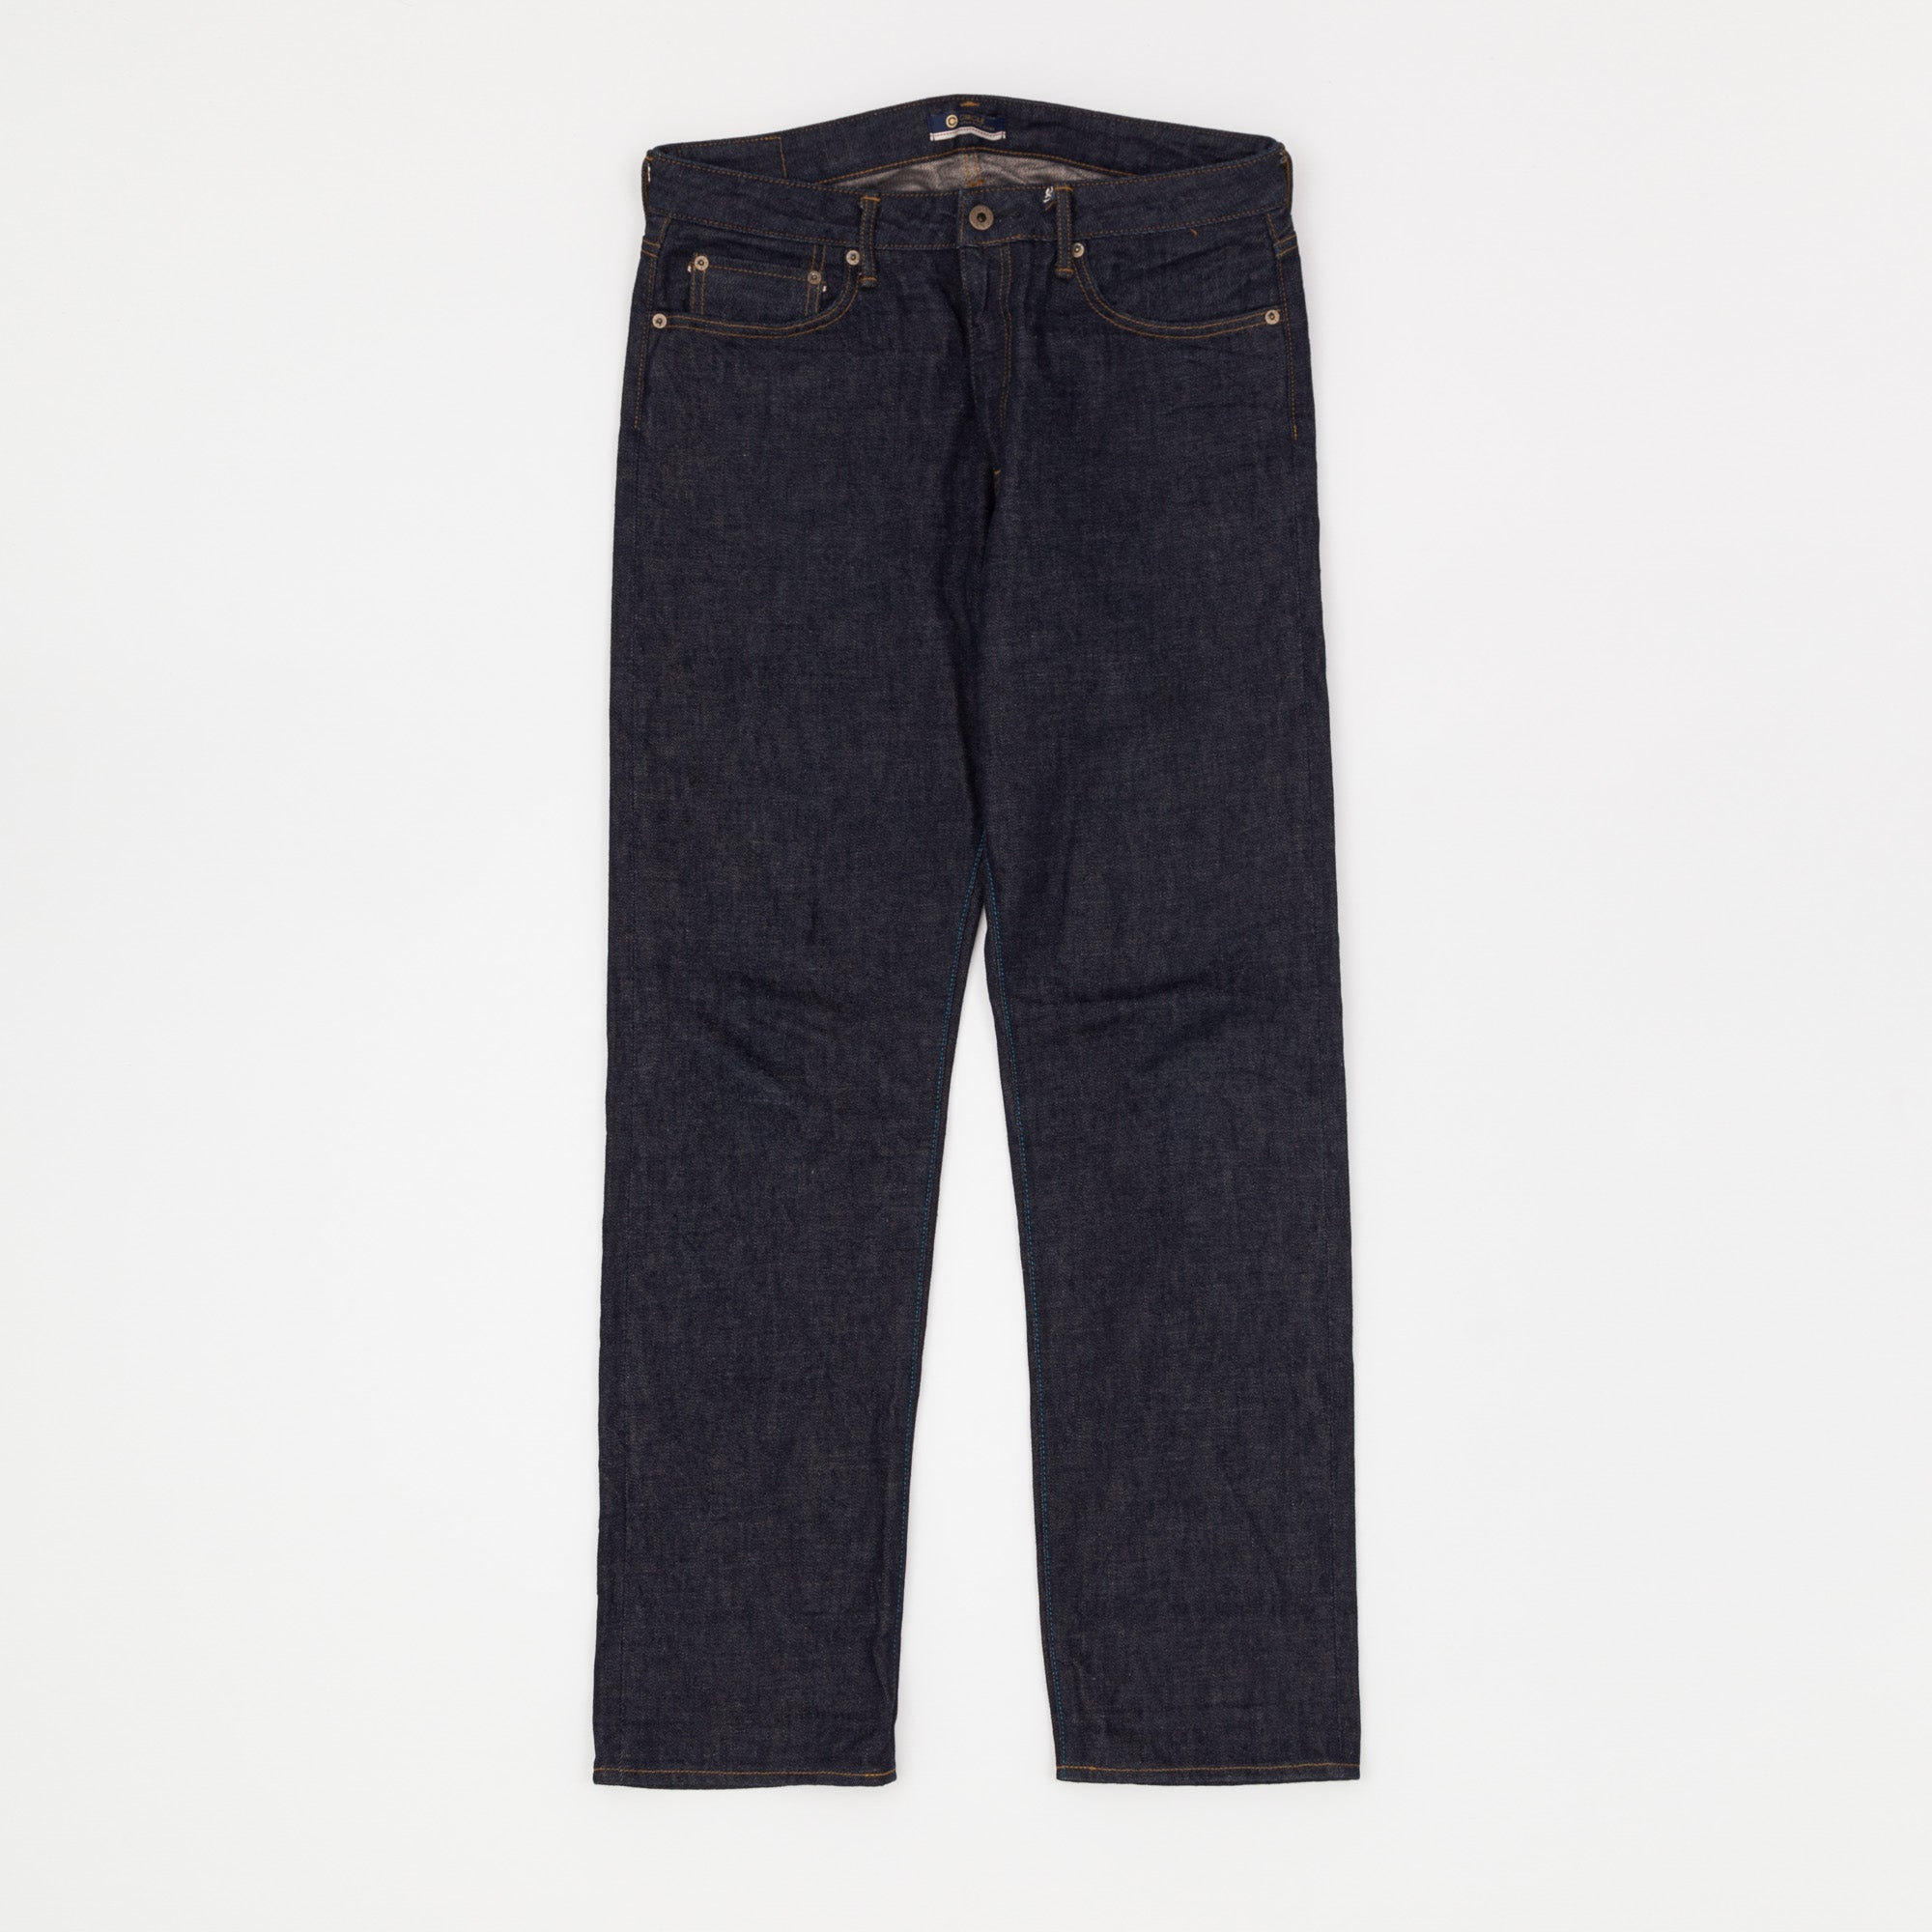 JAPAN BLUE Straight Fit Selvedge Jeans